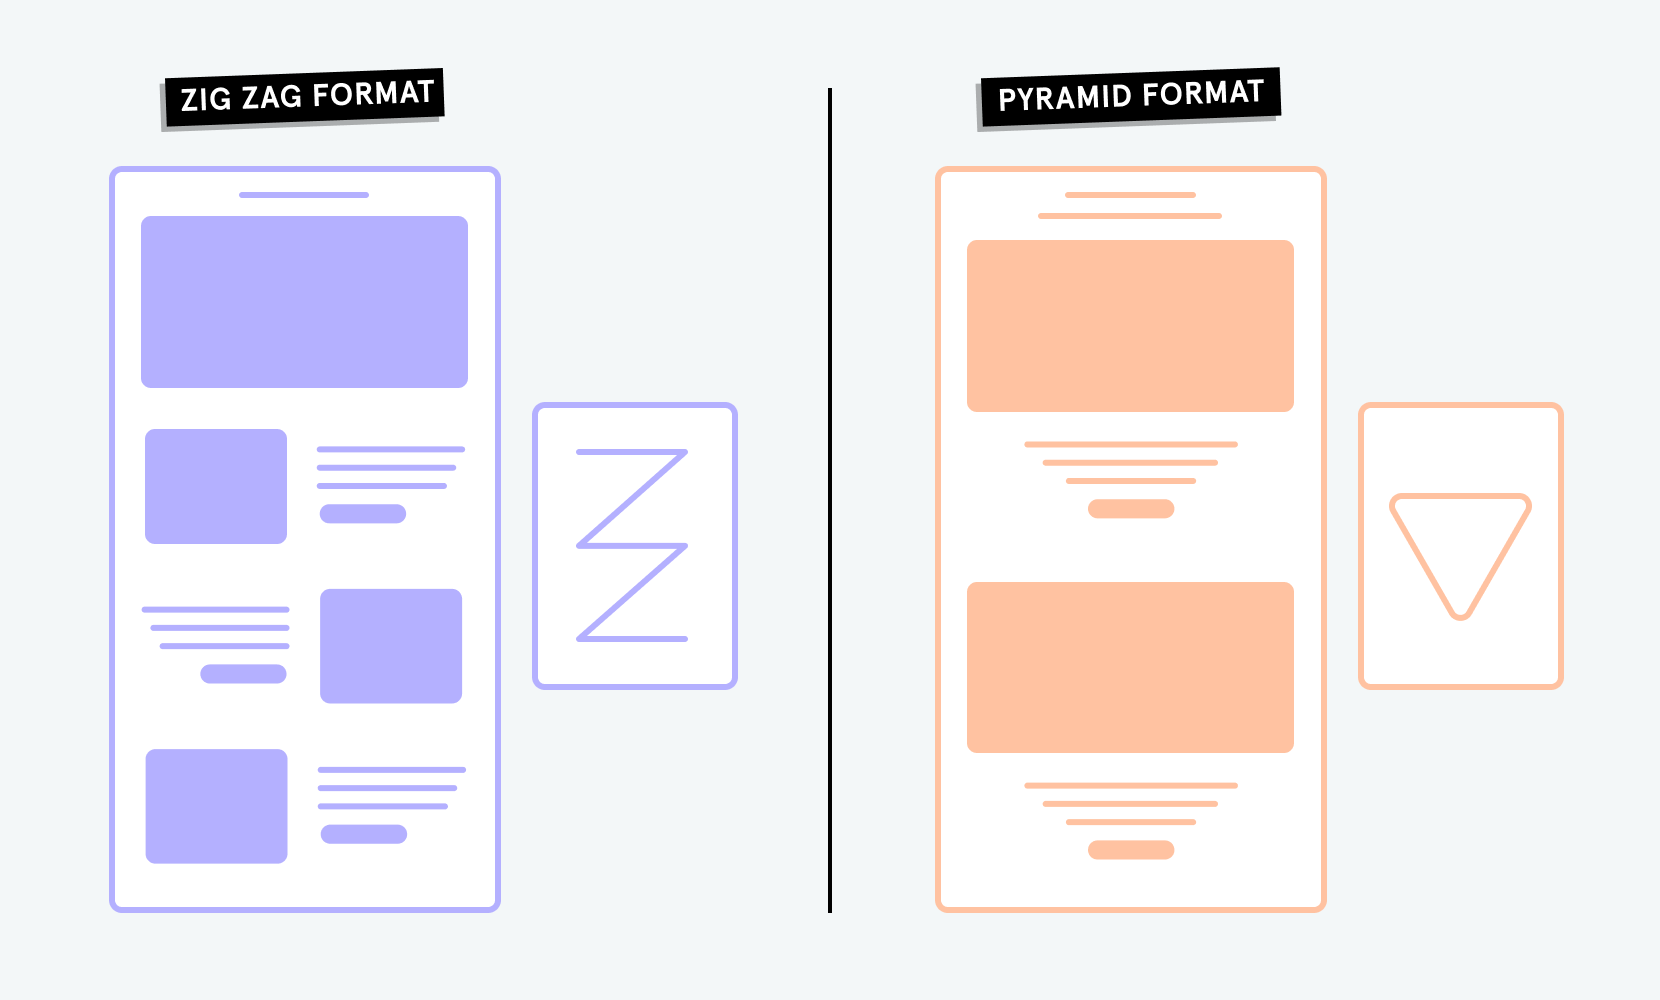 Zigzag and pyramid format for email design